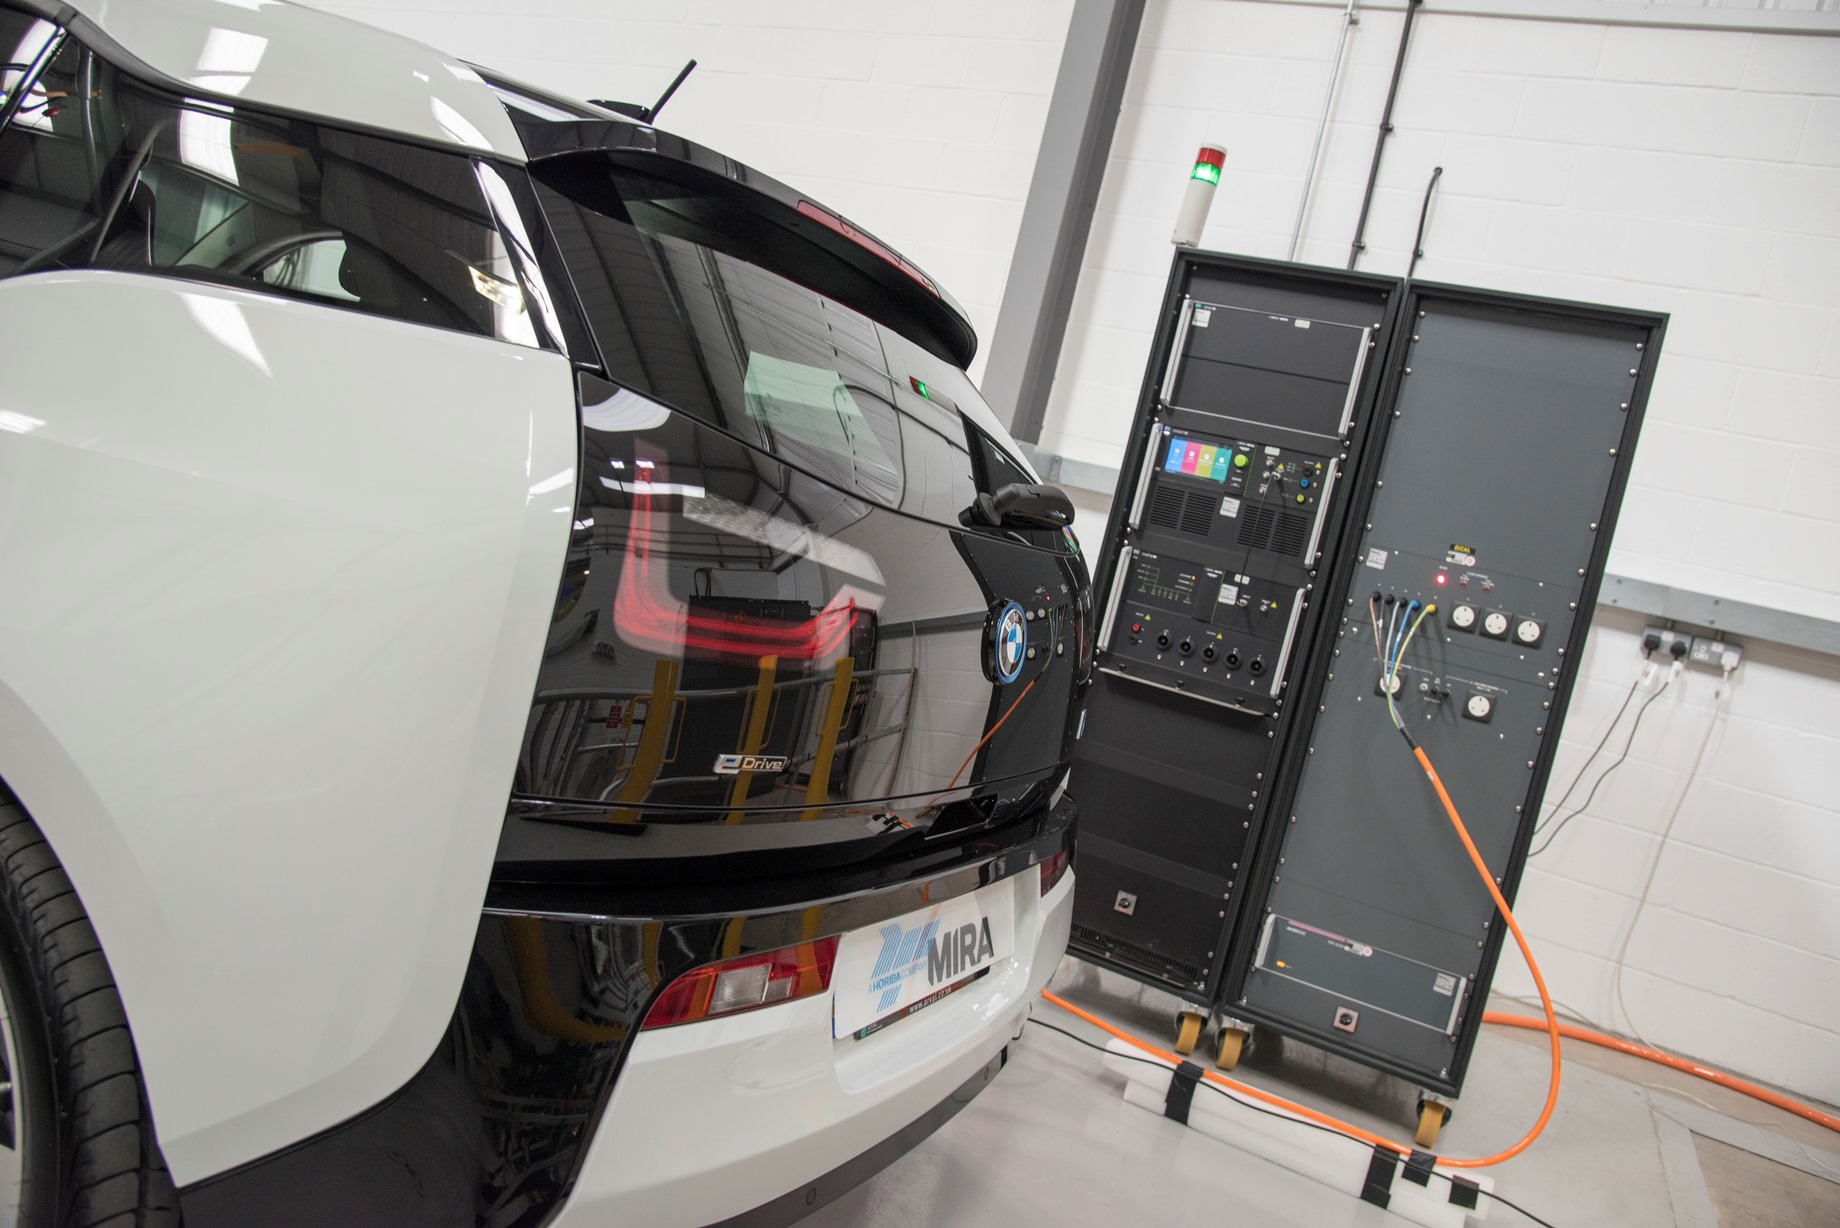 EMC testing technology for plug-in vehicles